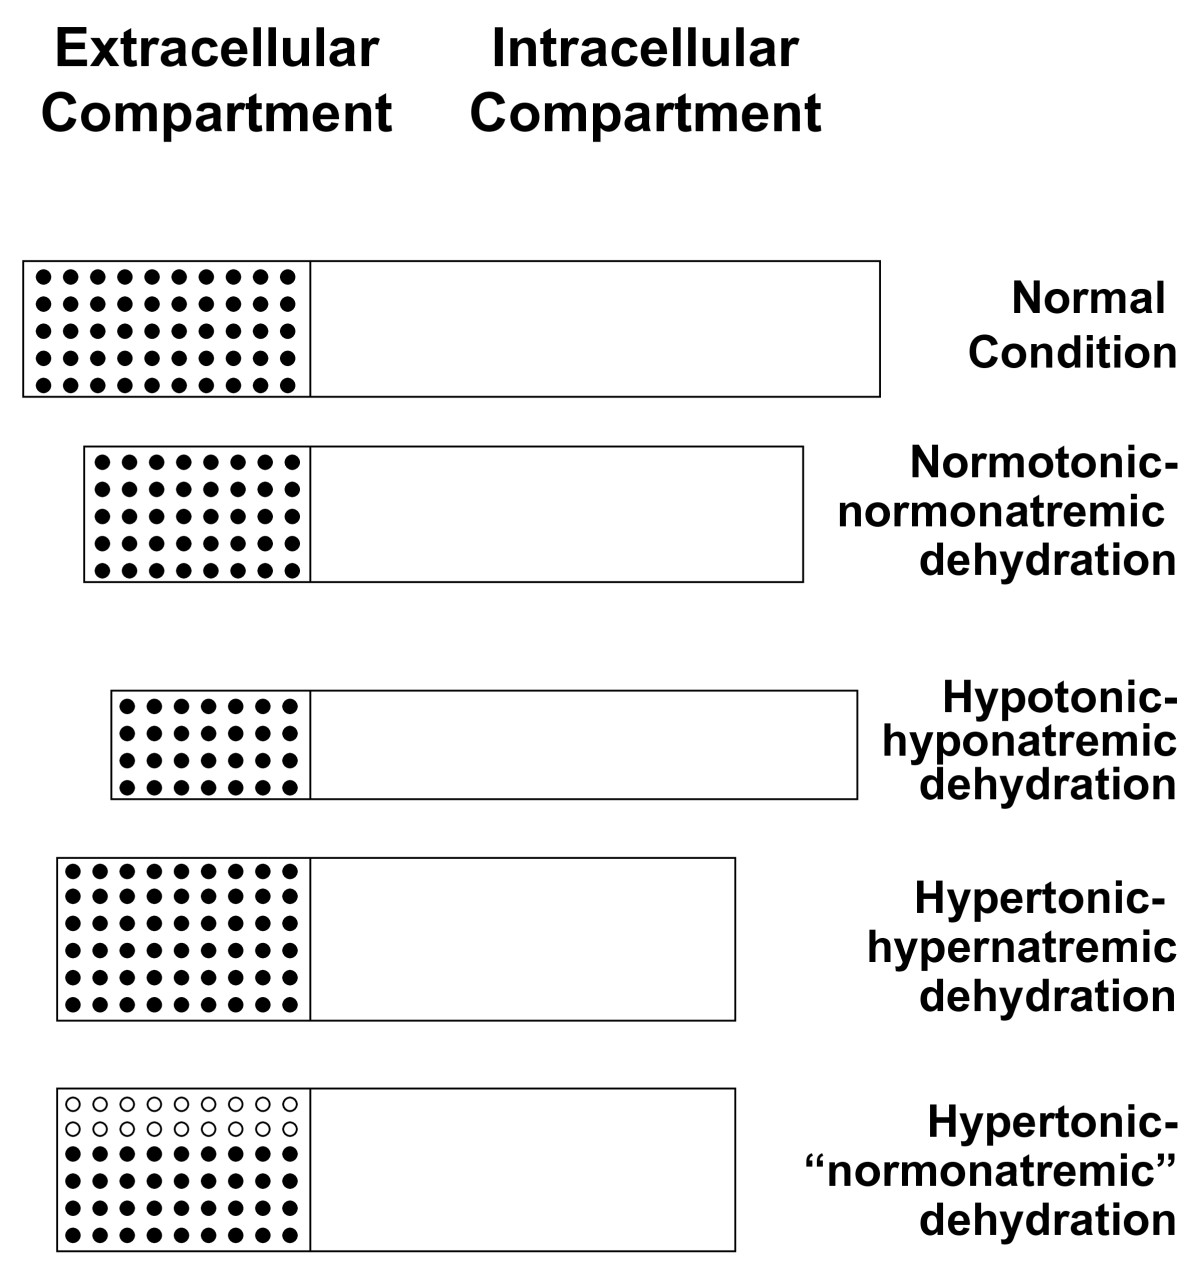 http://static-content.springer.com/image/art%3A10.1186%2F1824-7288-35-36/MediaObjects/13052_2009_Article_40_Fig4_HTML.jpg